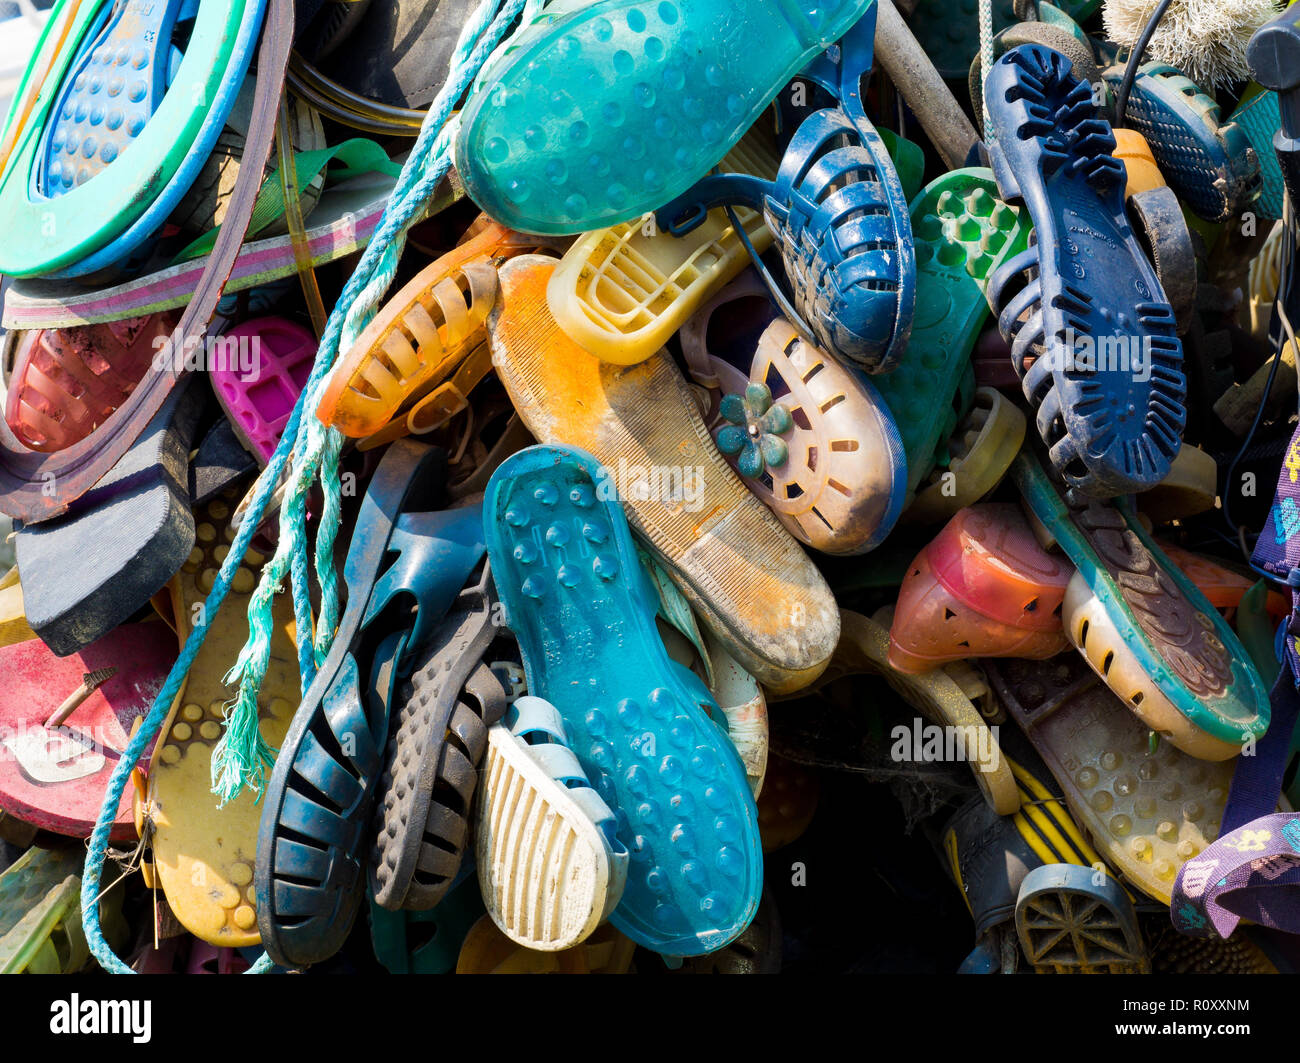 Discard beach debris - Stock Image